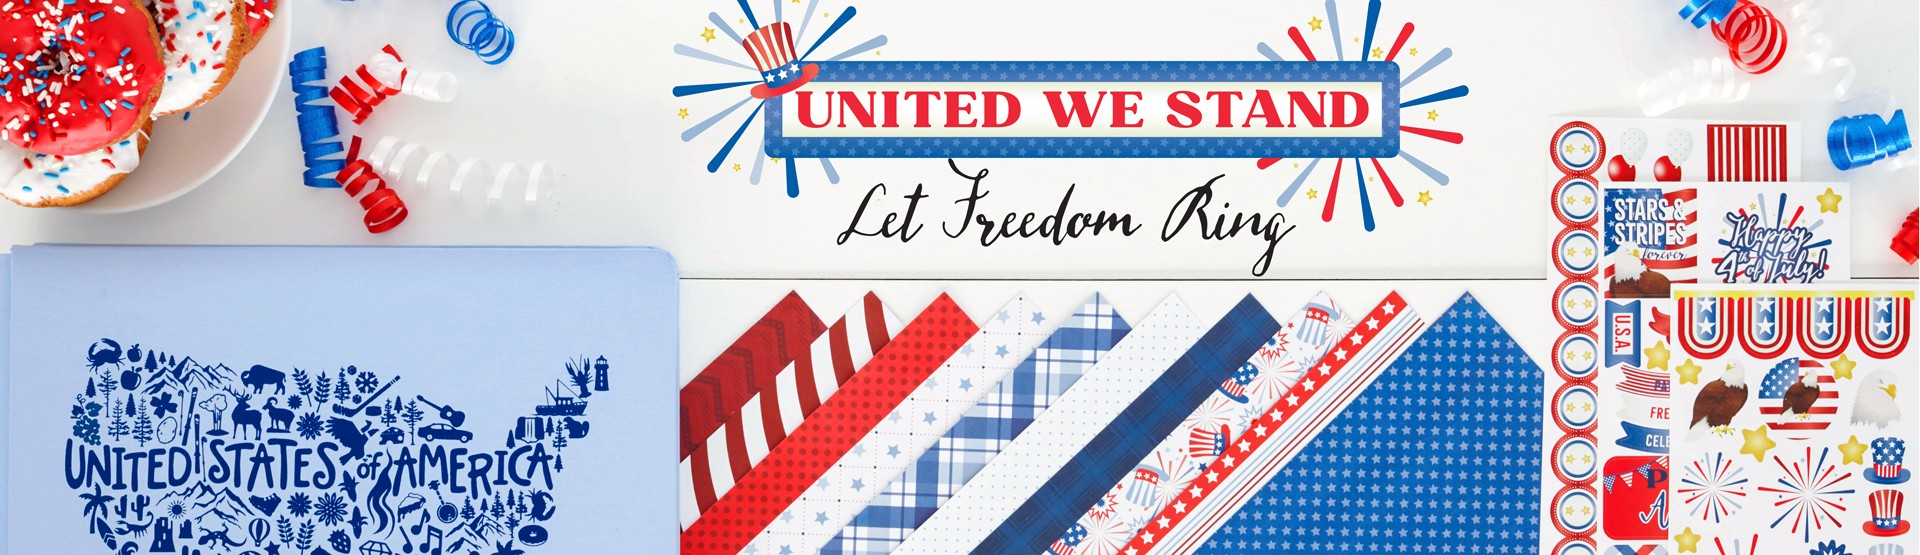 USA Scrapbooking Supplies: United We Stand